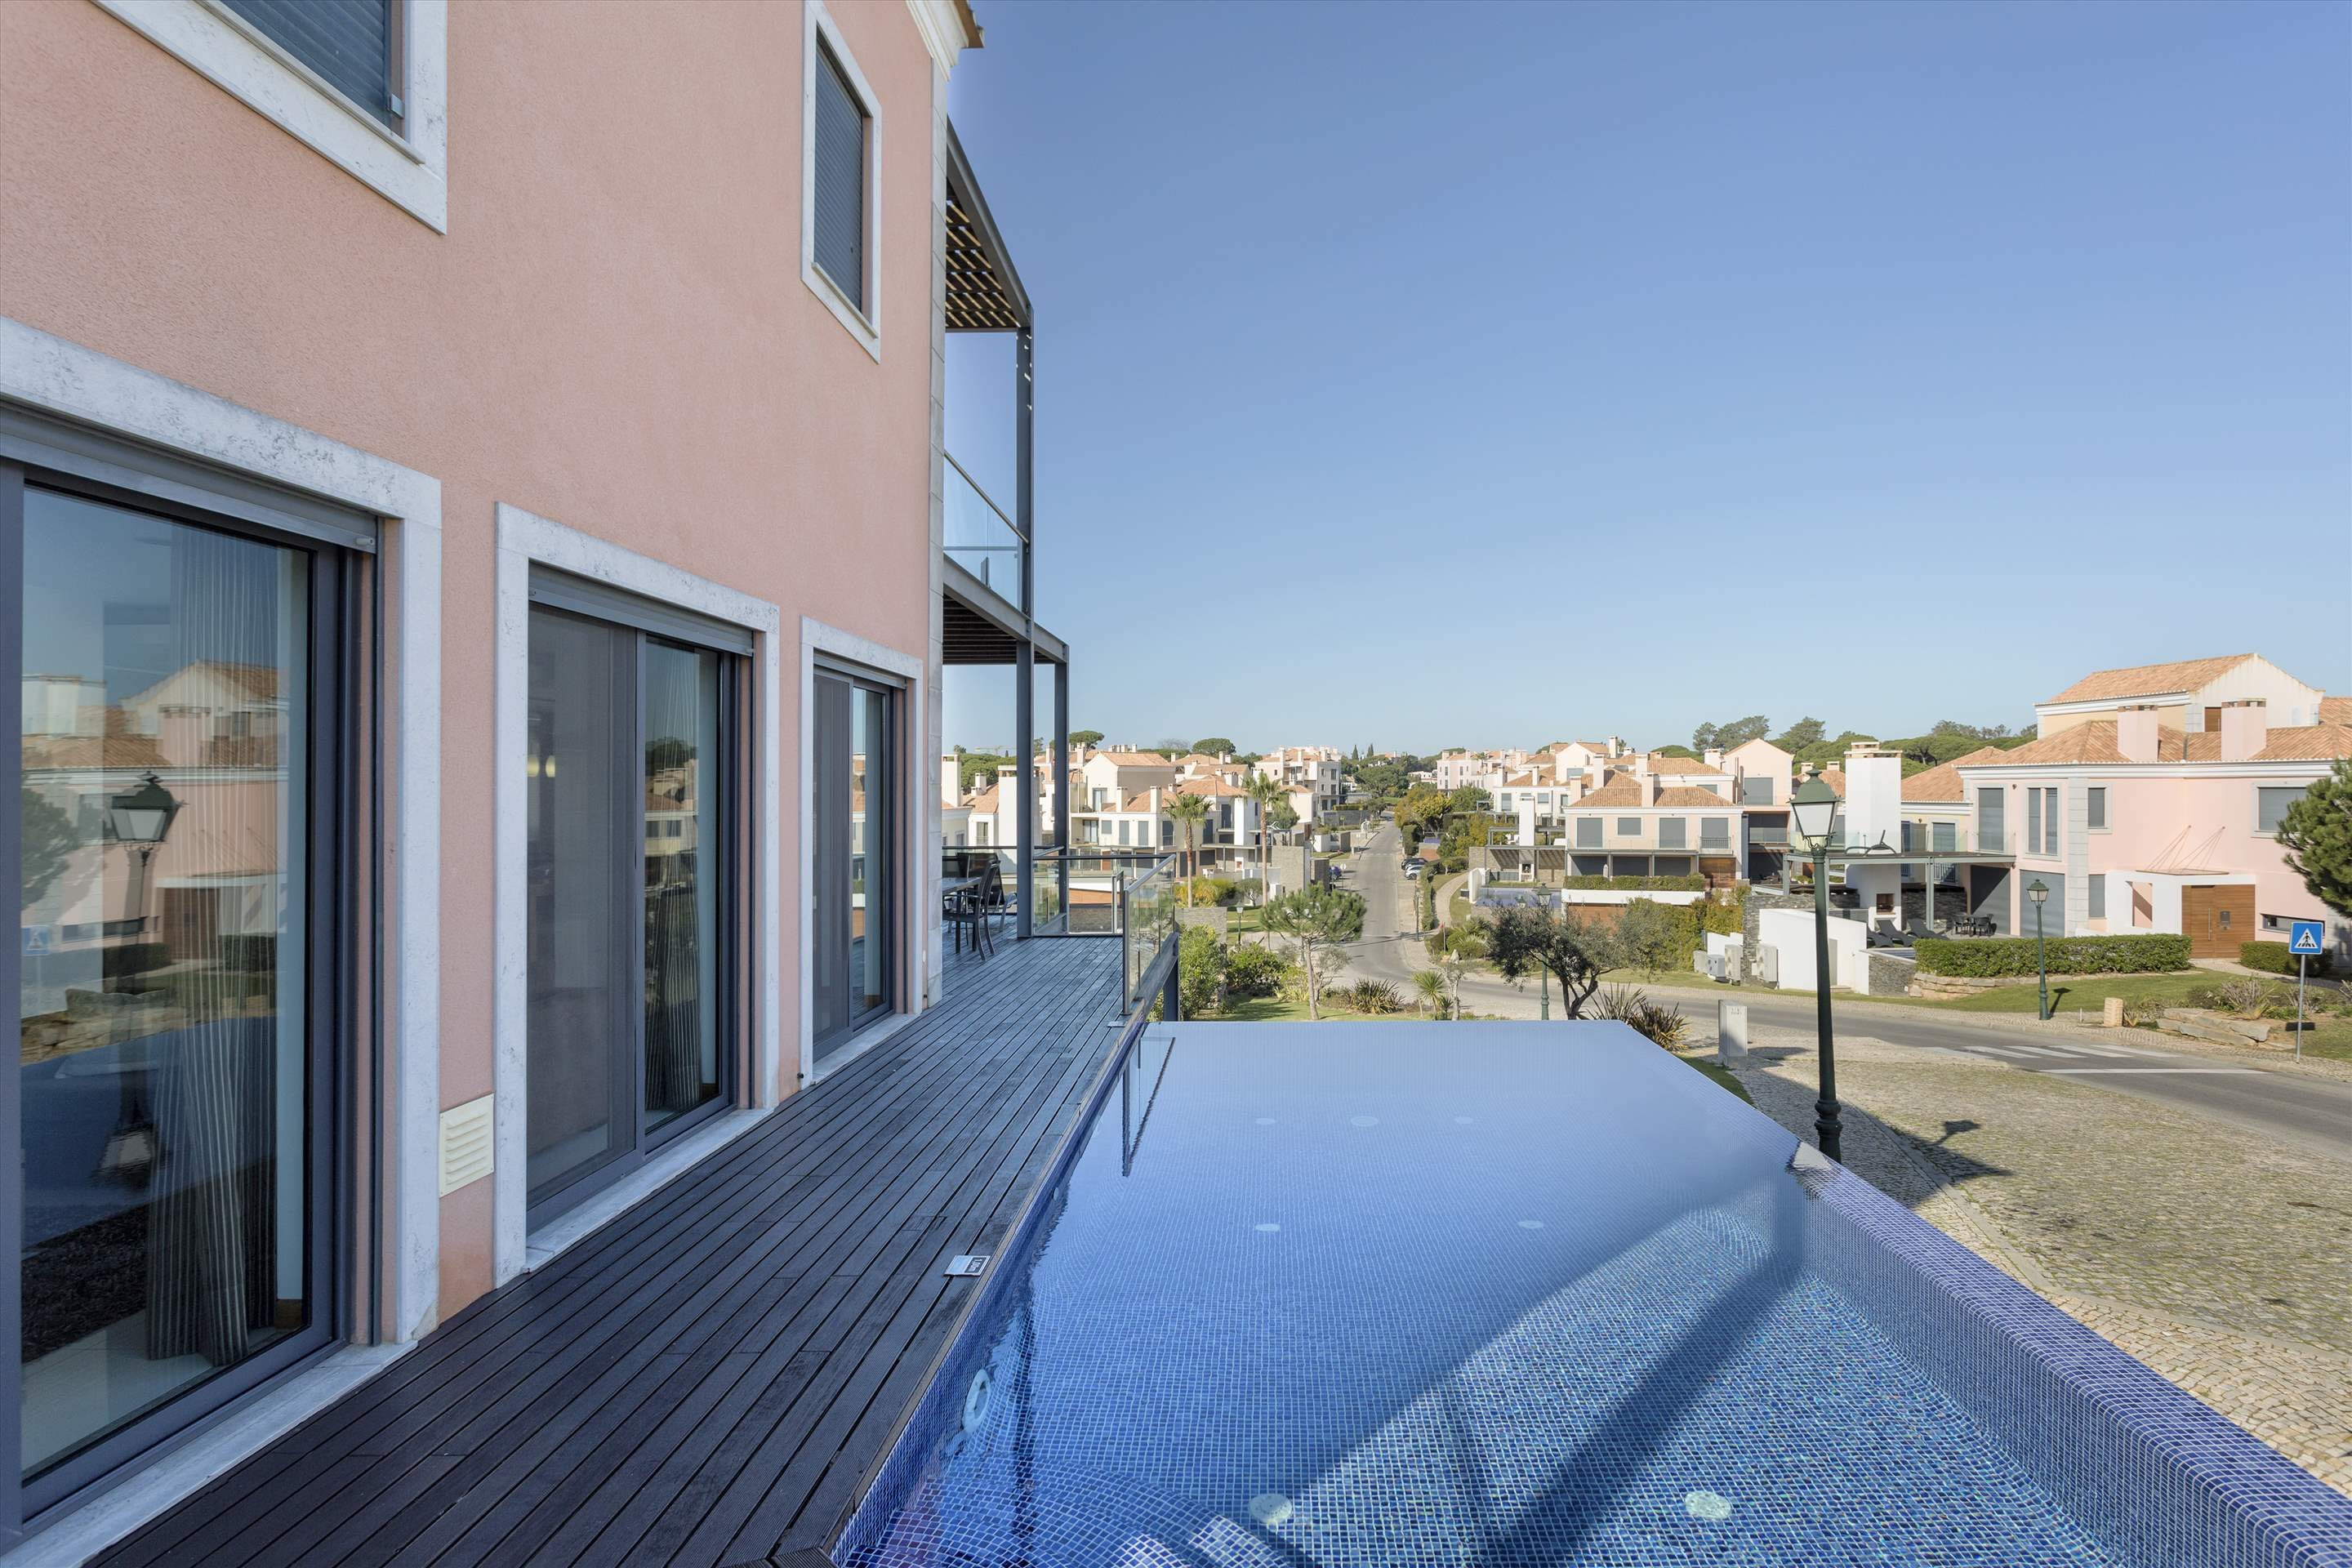 Apartment Fernanda, 2 bedroom apartment in Vale do Lobo, Algarve Photo #7